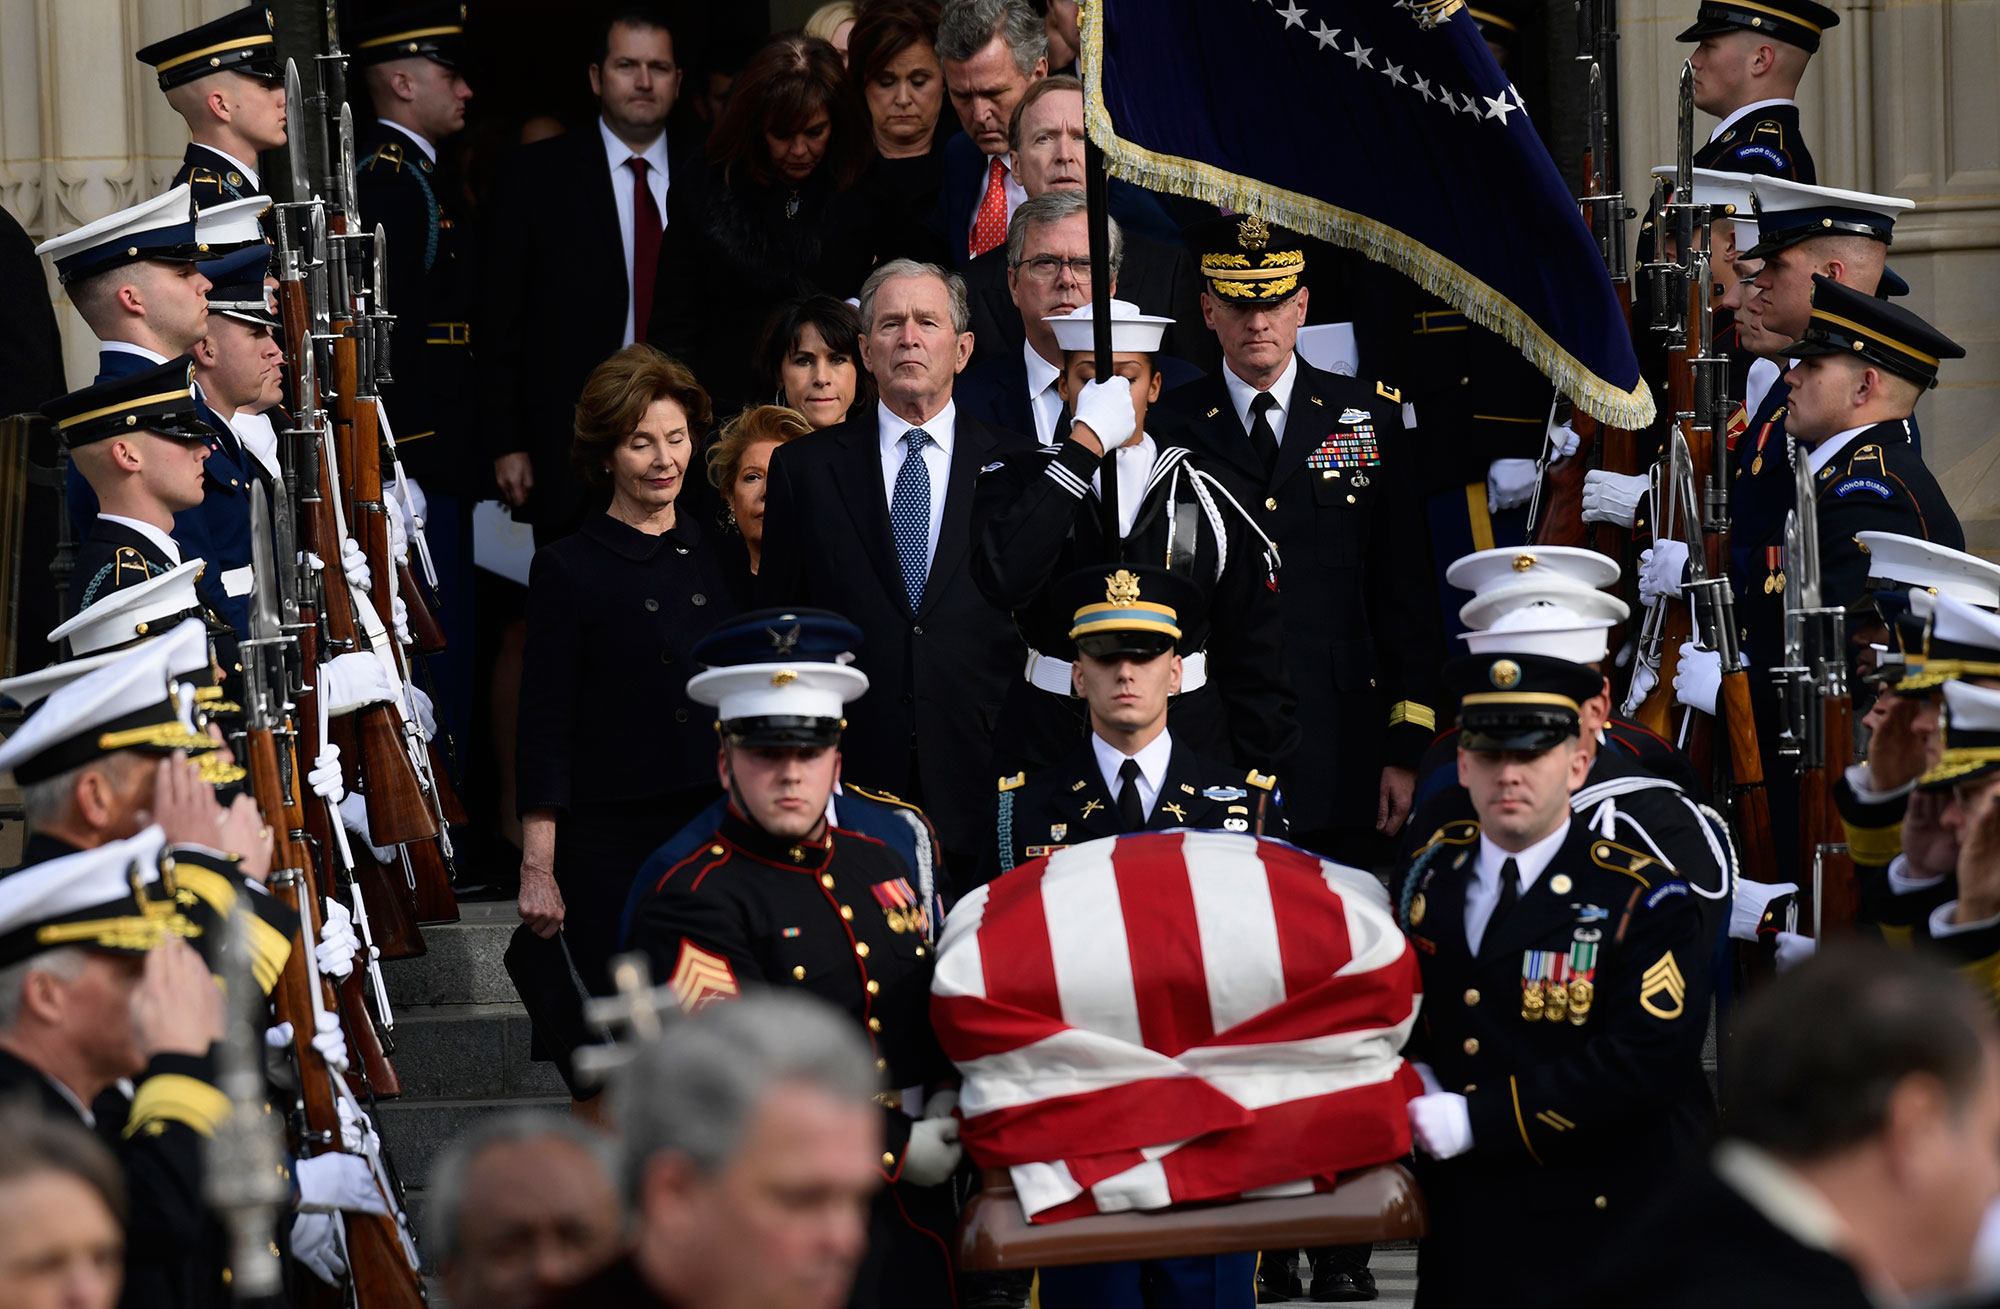 "<div class=""meta image-caption""><div class=""origin-logo origin-image none""><span>none</span></div><span class=""caption-text"">Former President George W. Bush and his wife Laura Bush, center, join their family as they follow the casket of former President George H.W. Bush. (Susan Walsh/AP Photo)</span></div>"